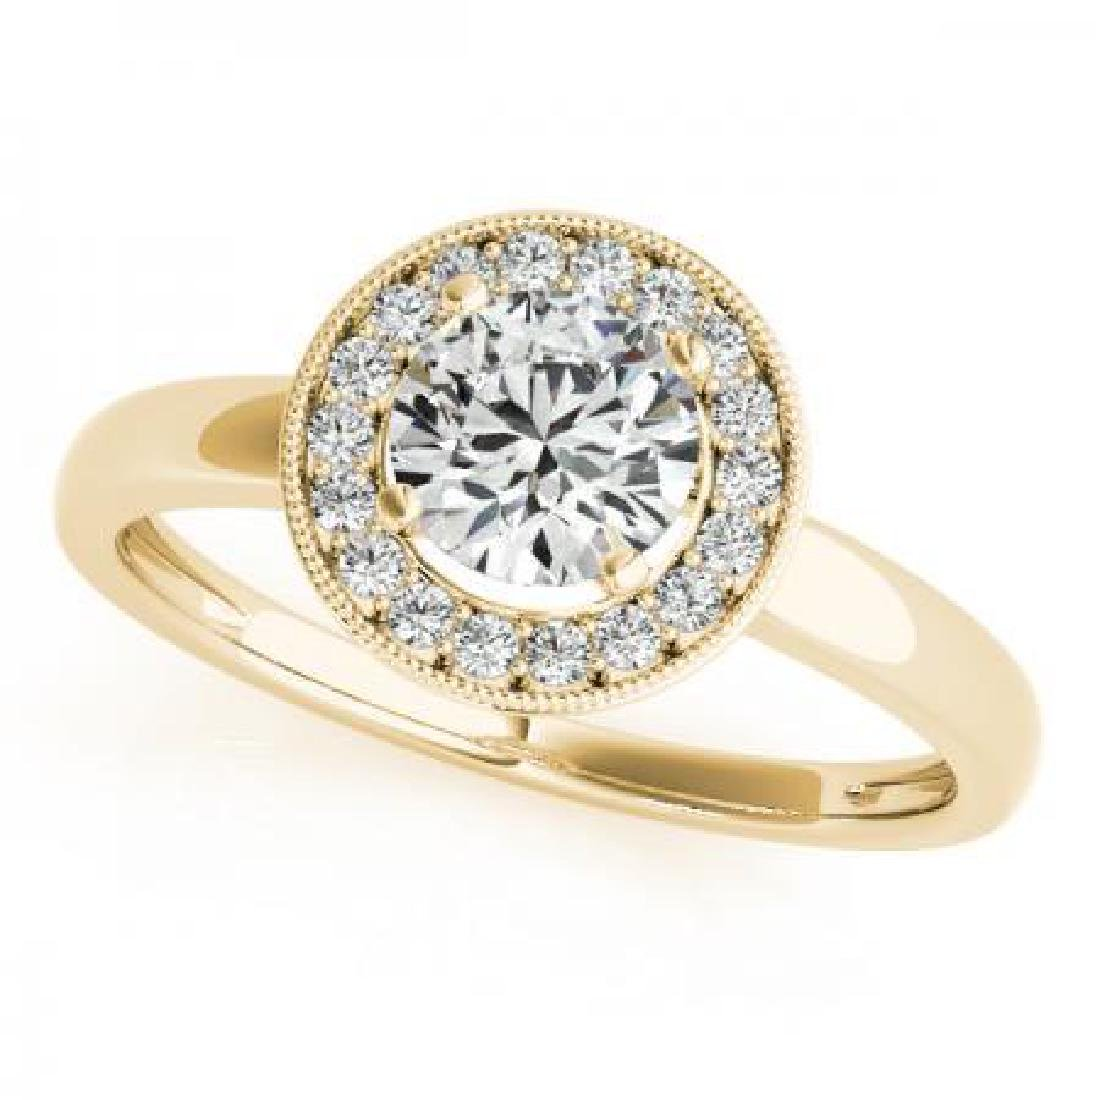 CERTIFIED 18K YELLOW GOLD 1.36 CT G-H/VS-SI1 DIAMOND HA